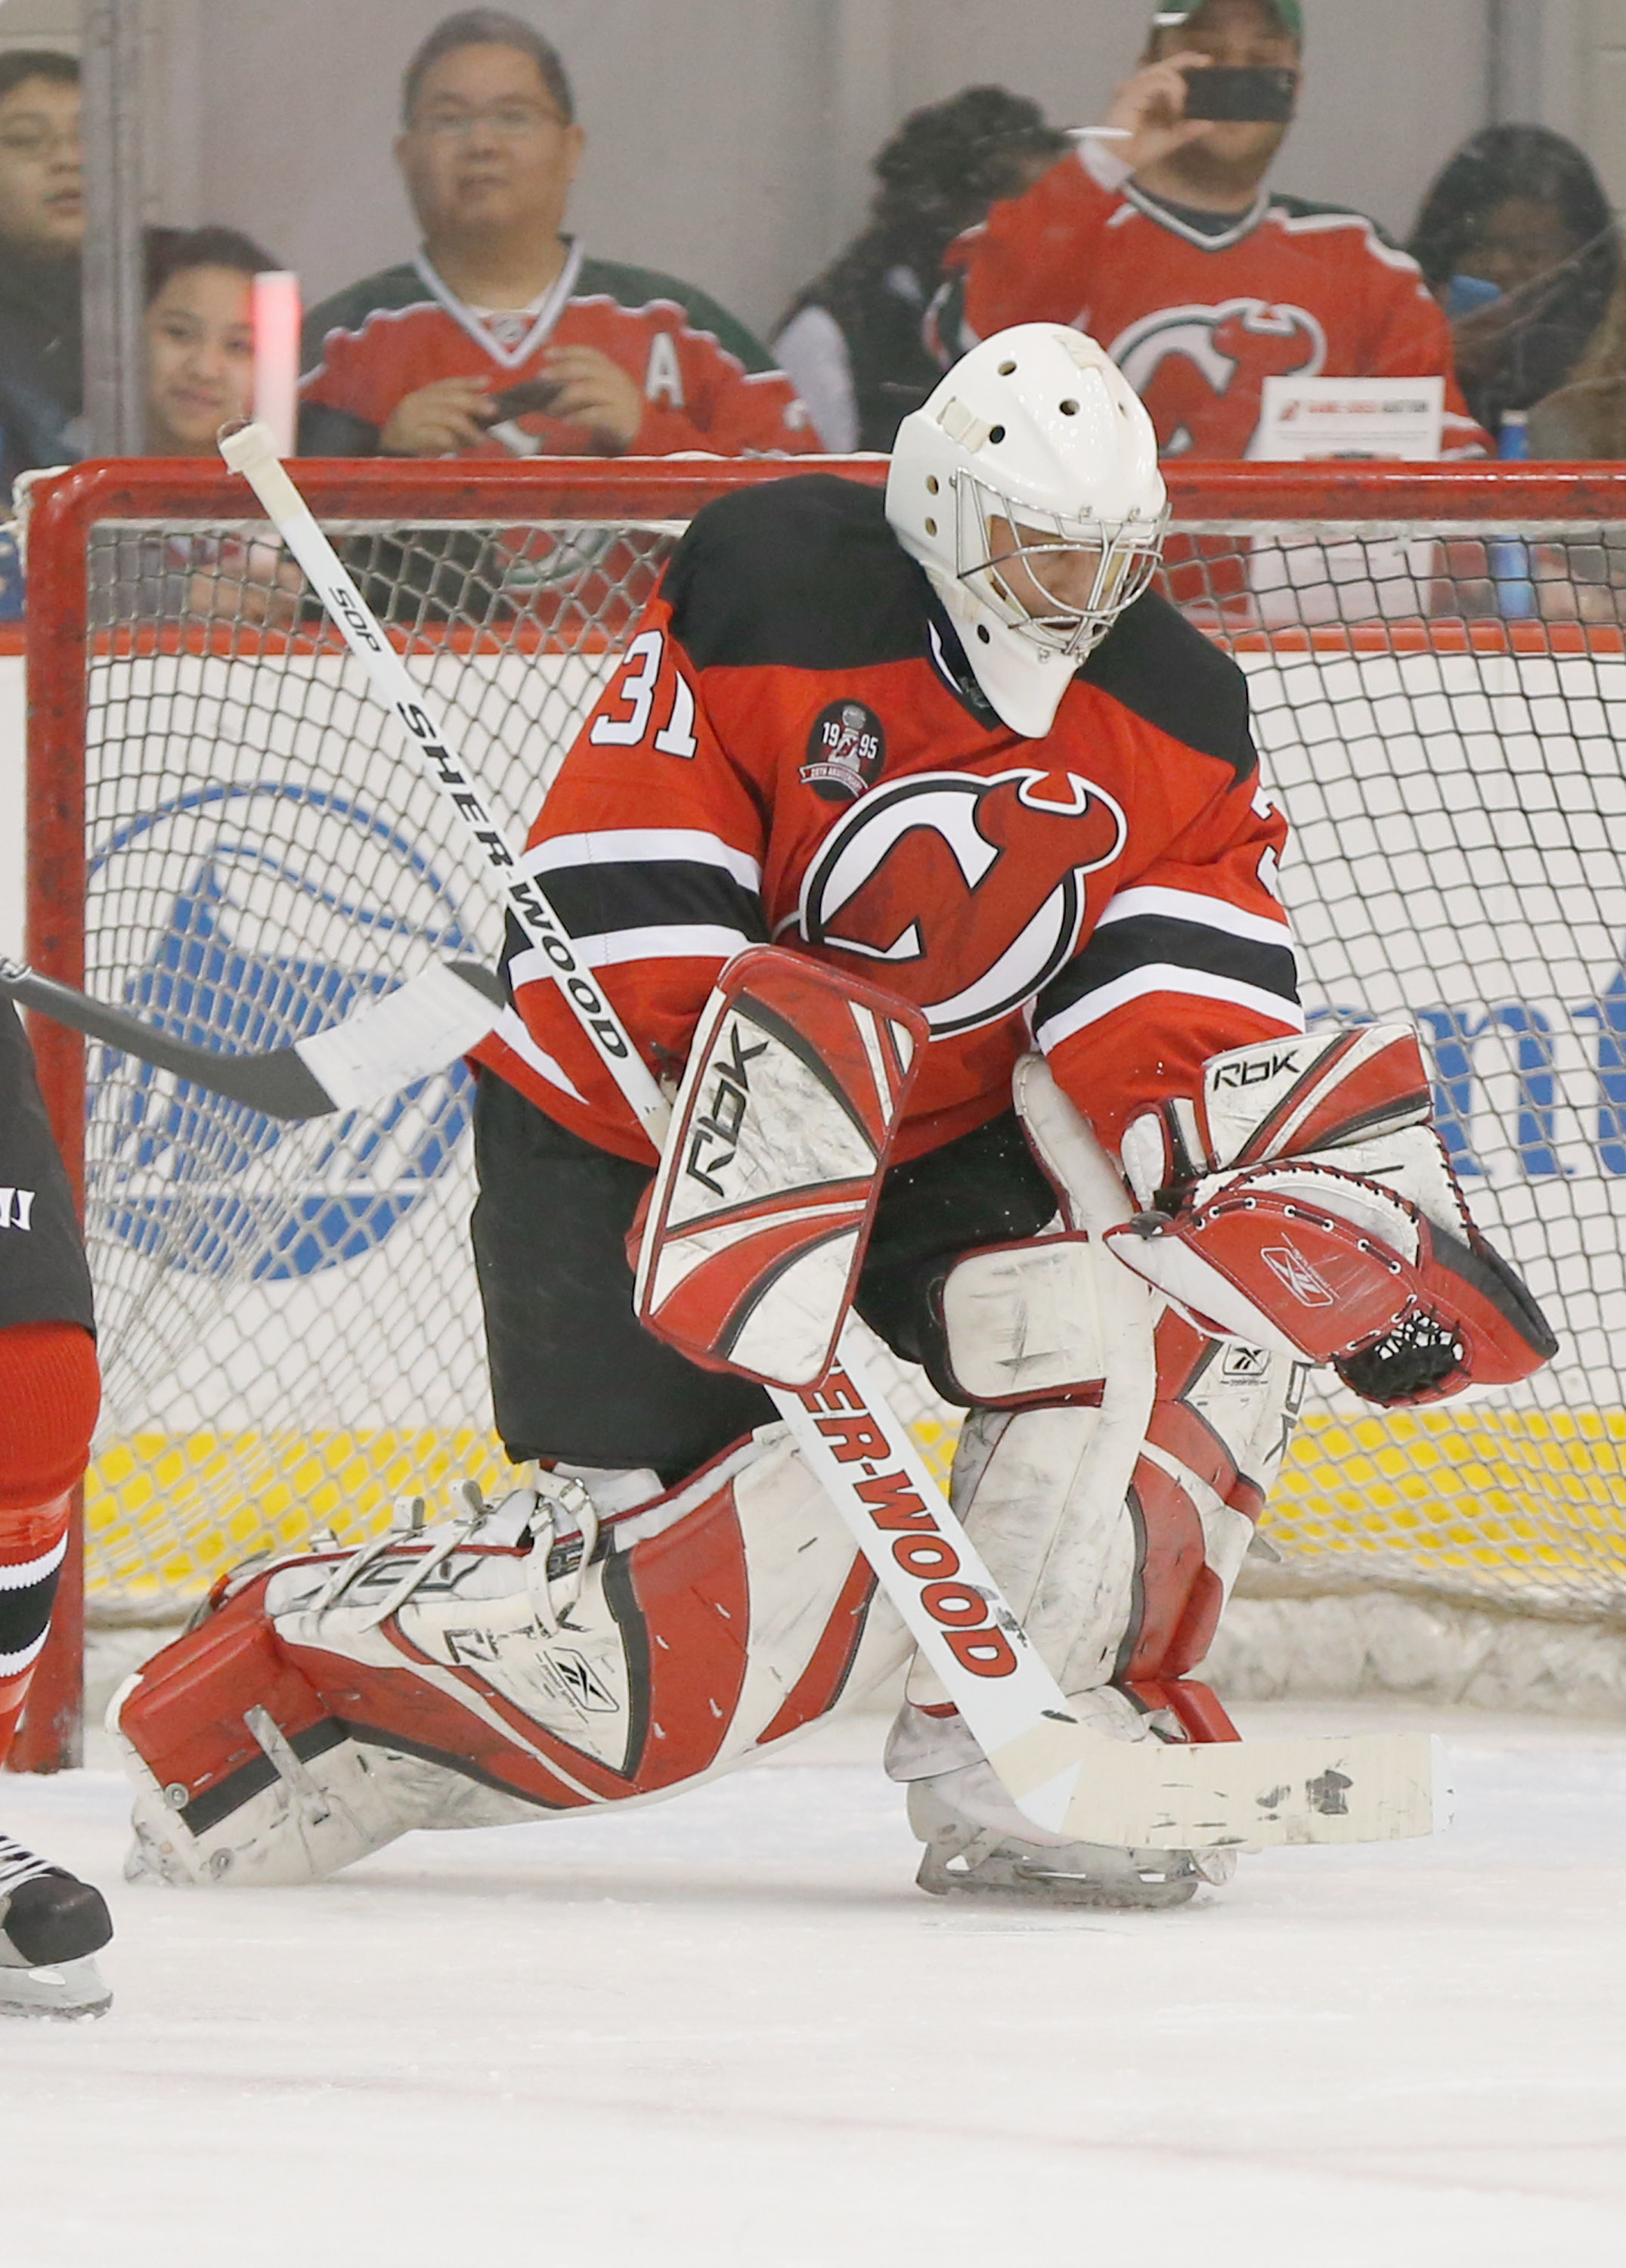 New Jersey Devils 1995 Stanley Cup Championship Reunion Charity Game